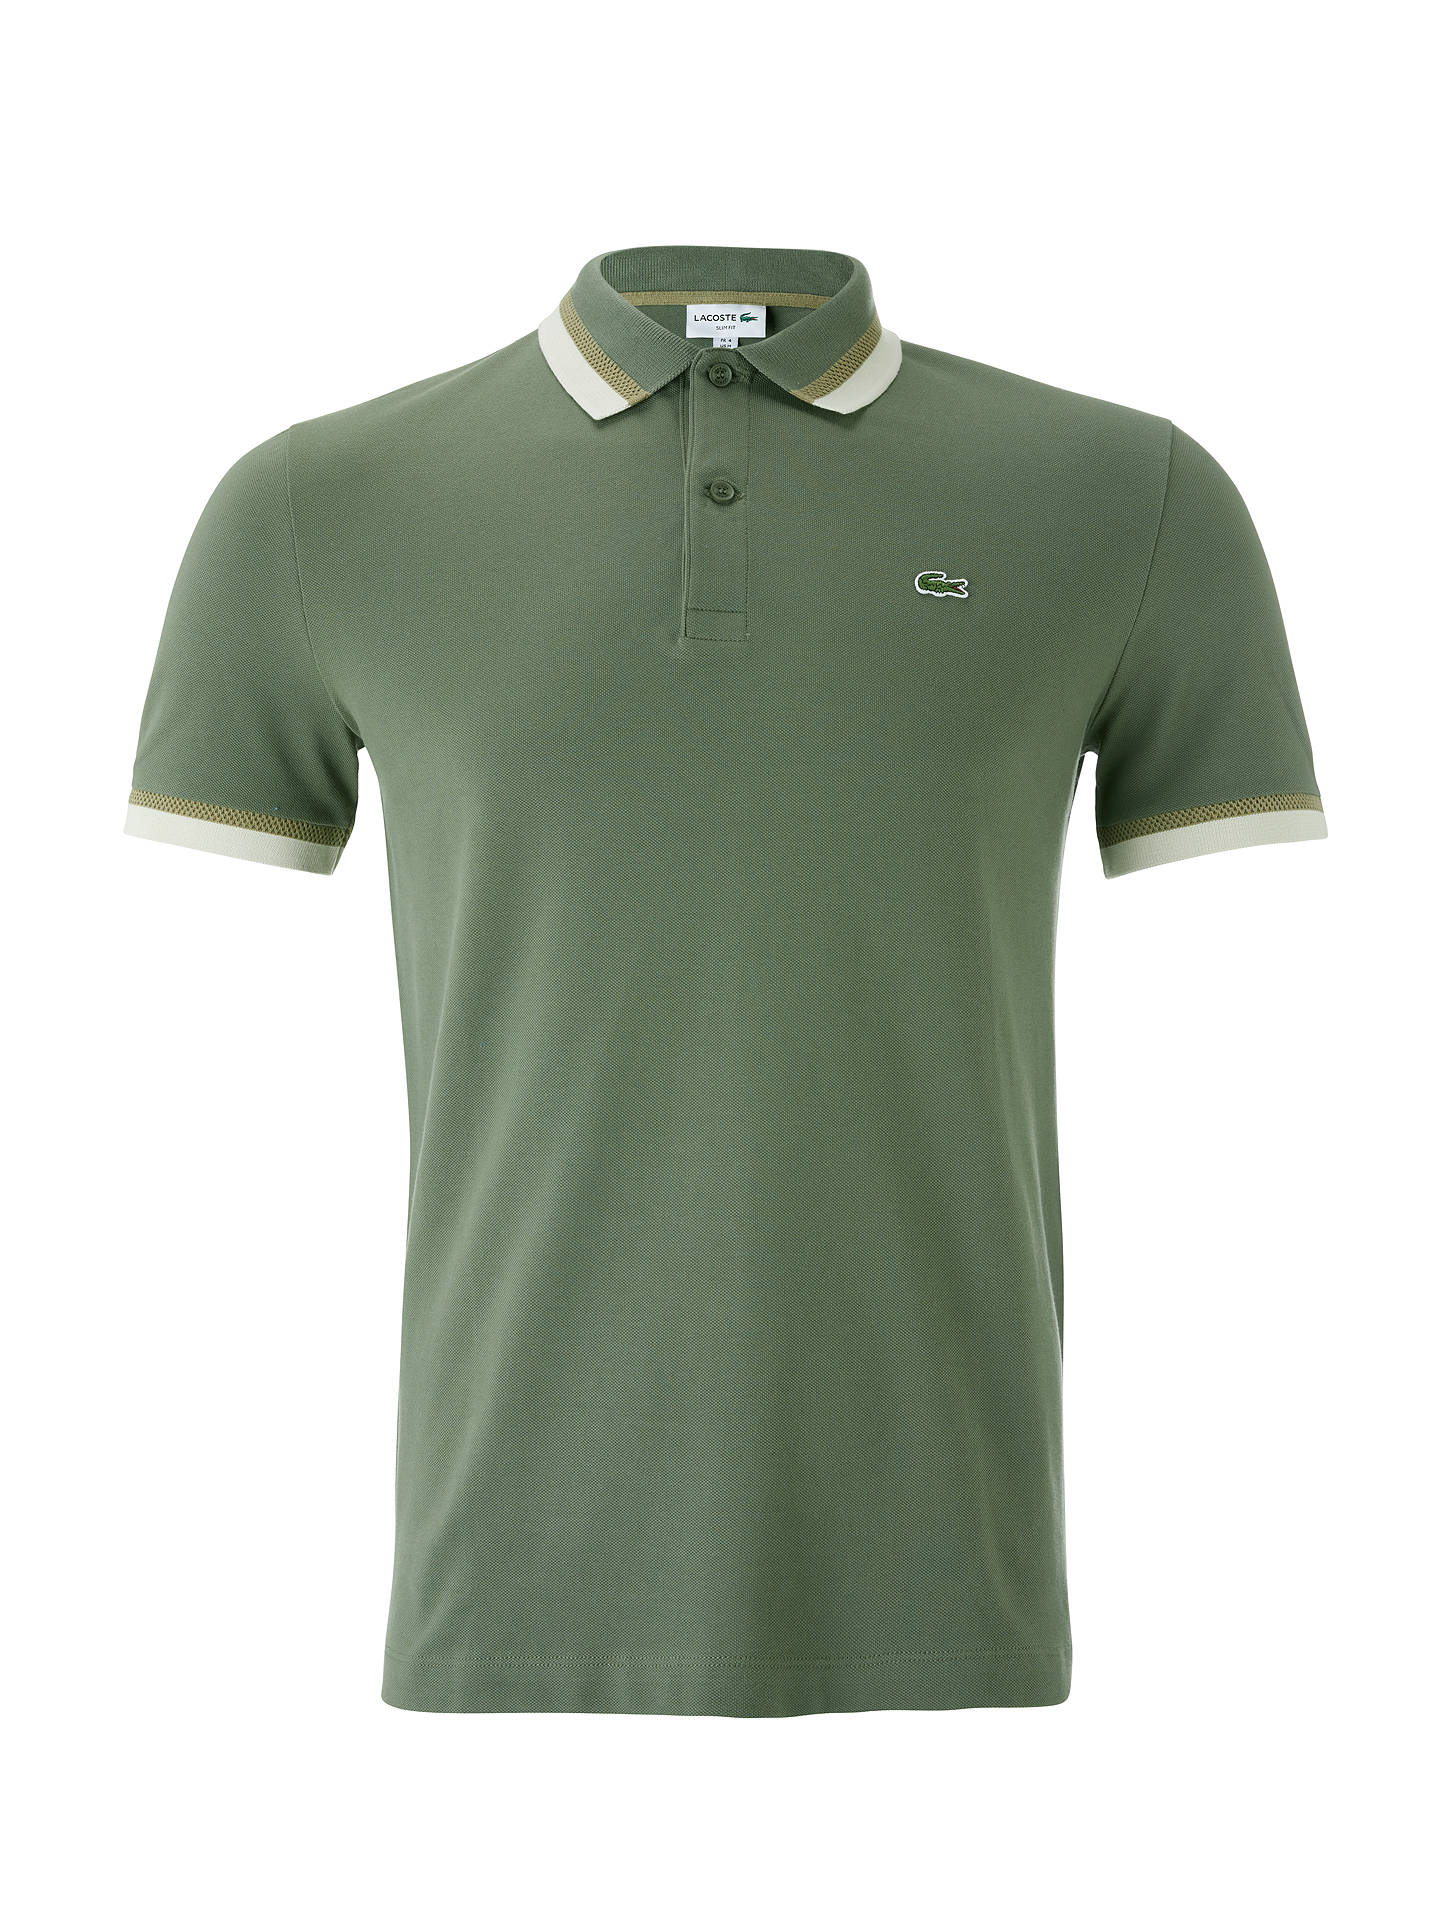 c2173f0b ... Buy Lacoste Slim Fit Twin Tipped Short Sleeve Polo Shirt, Green, S  Online at ...